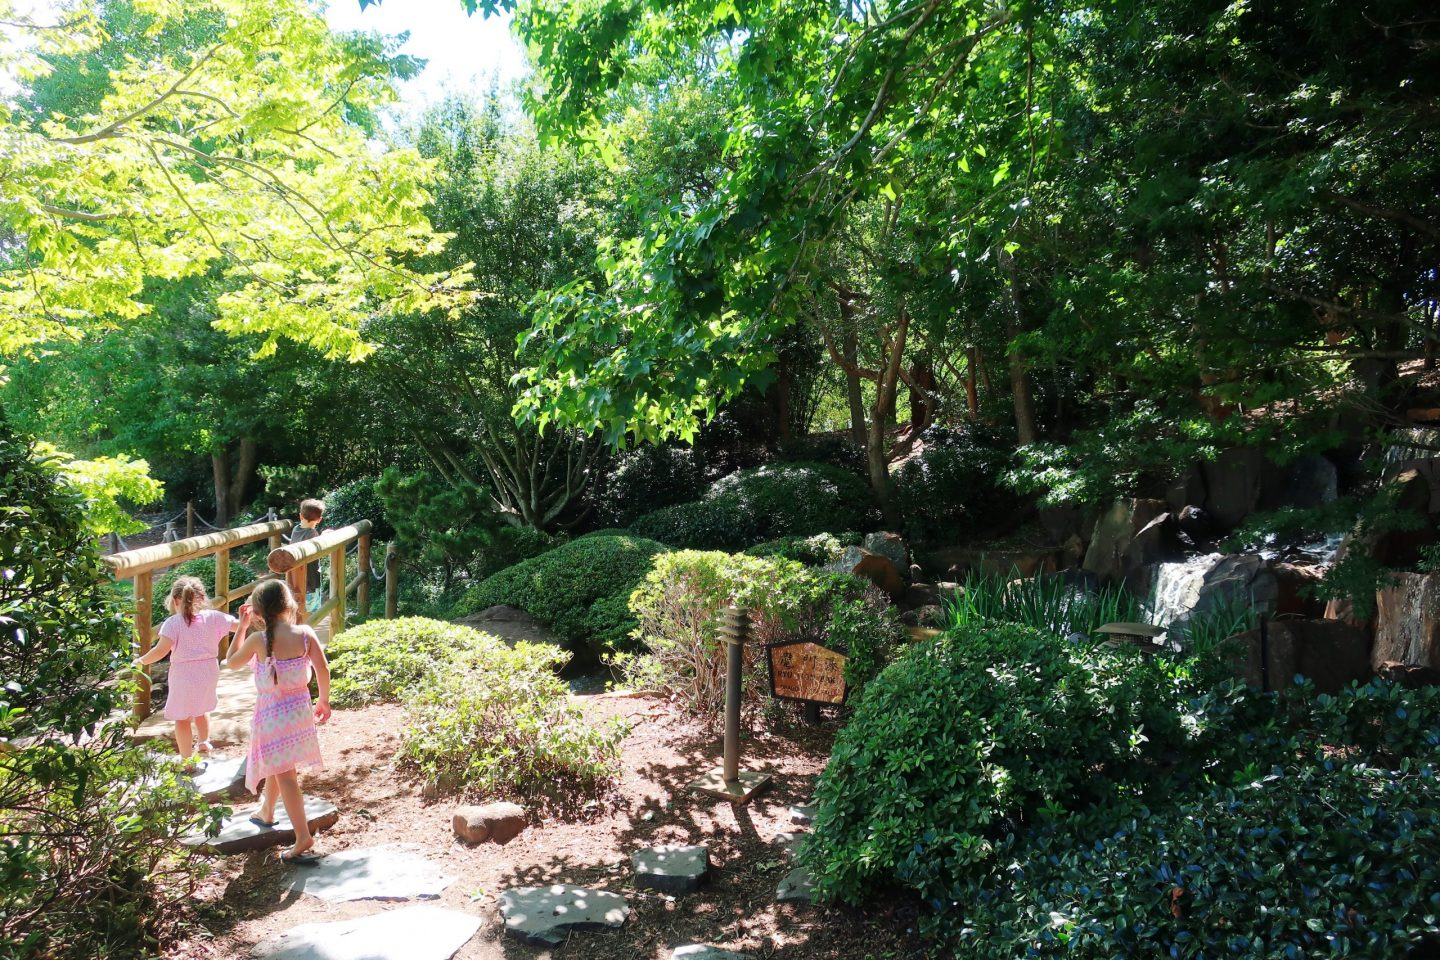 Top 5 Things To Do In Toowoomba With Kids